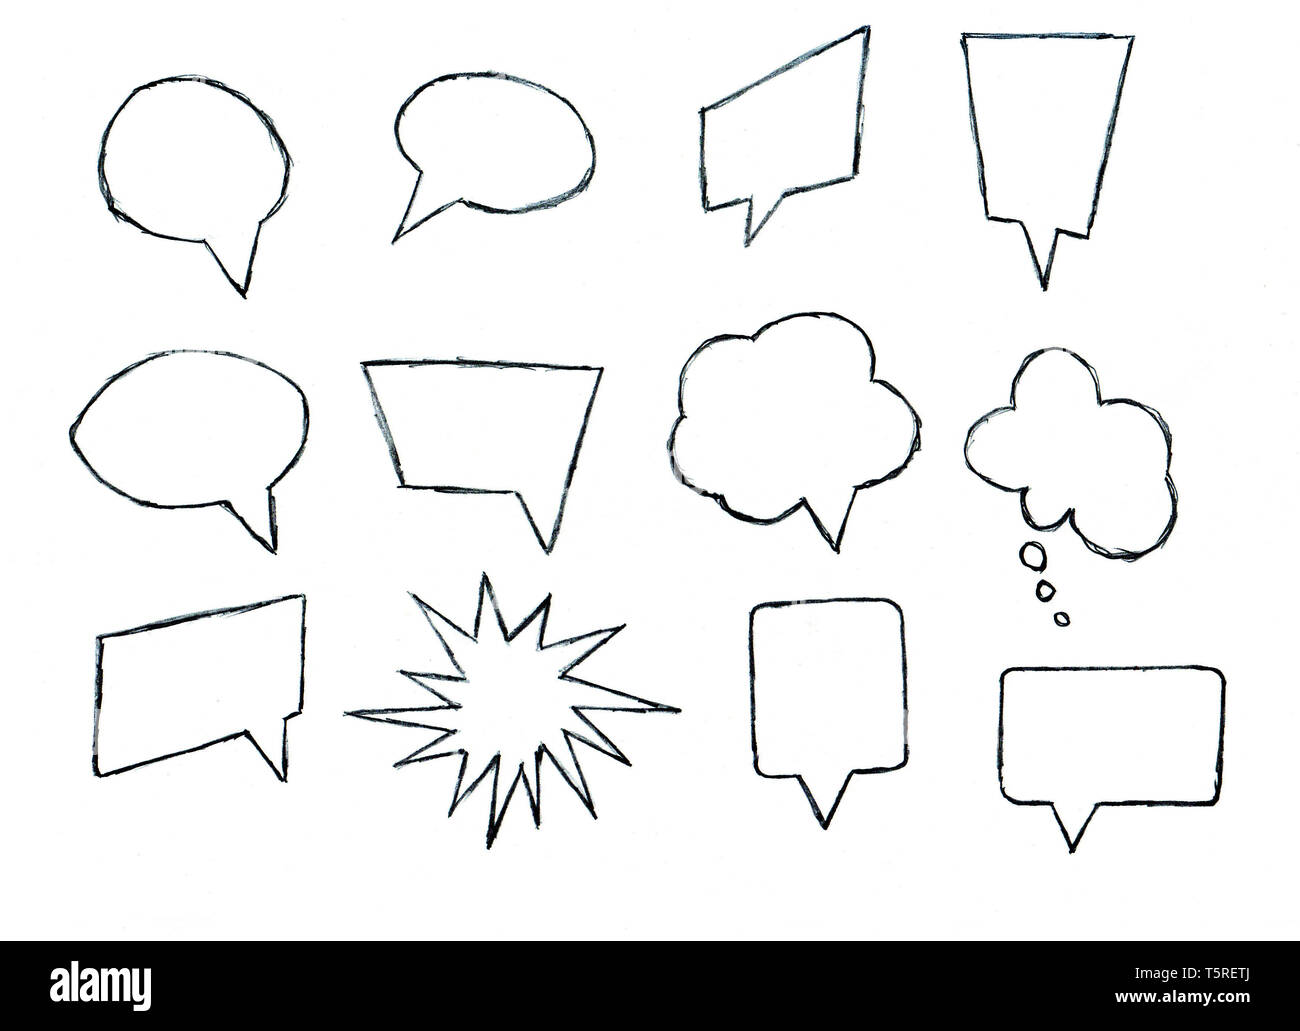 Set of pencil-drawn speech bubbles for design and decoration of chat dialogues animation or comics, flat design - Stock Image